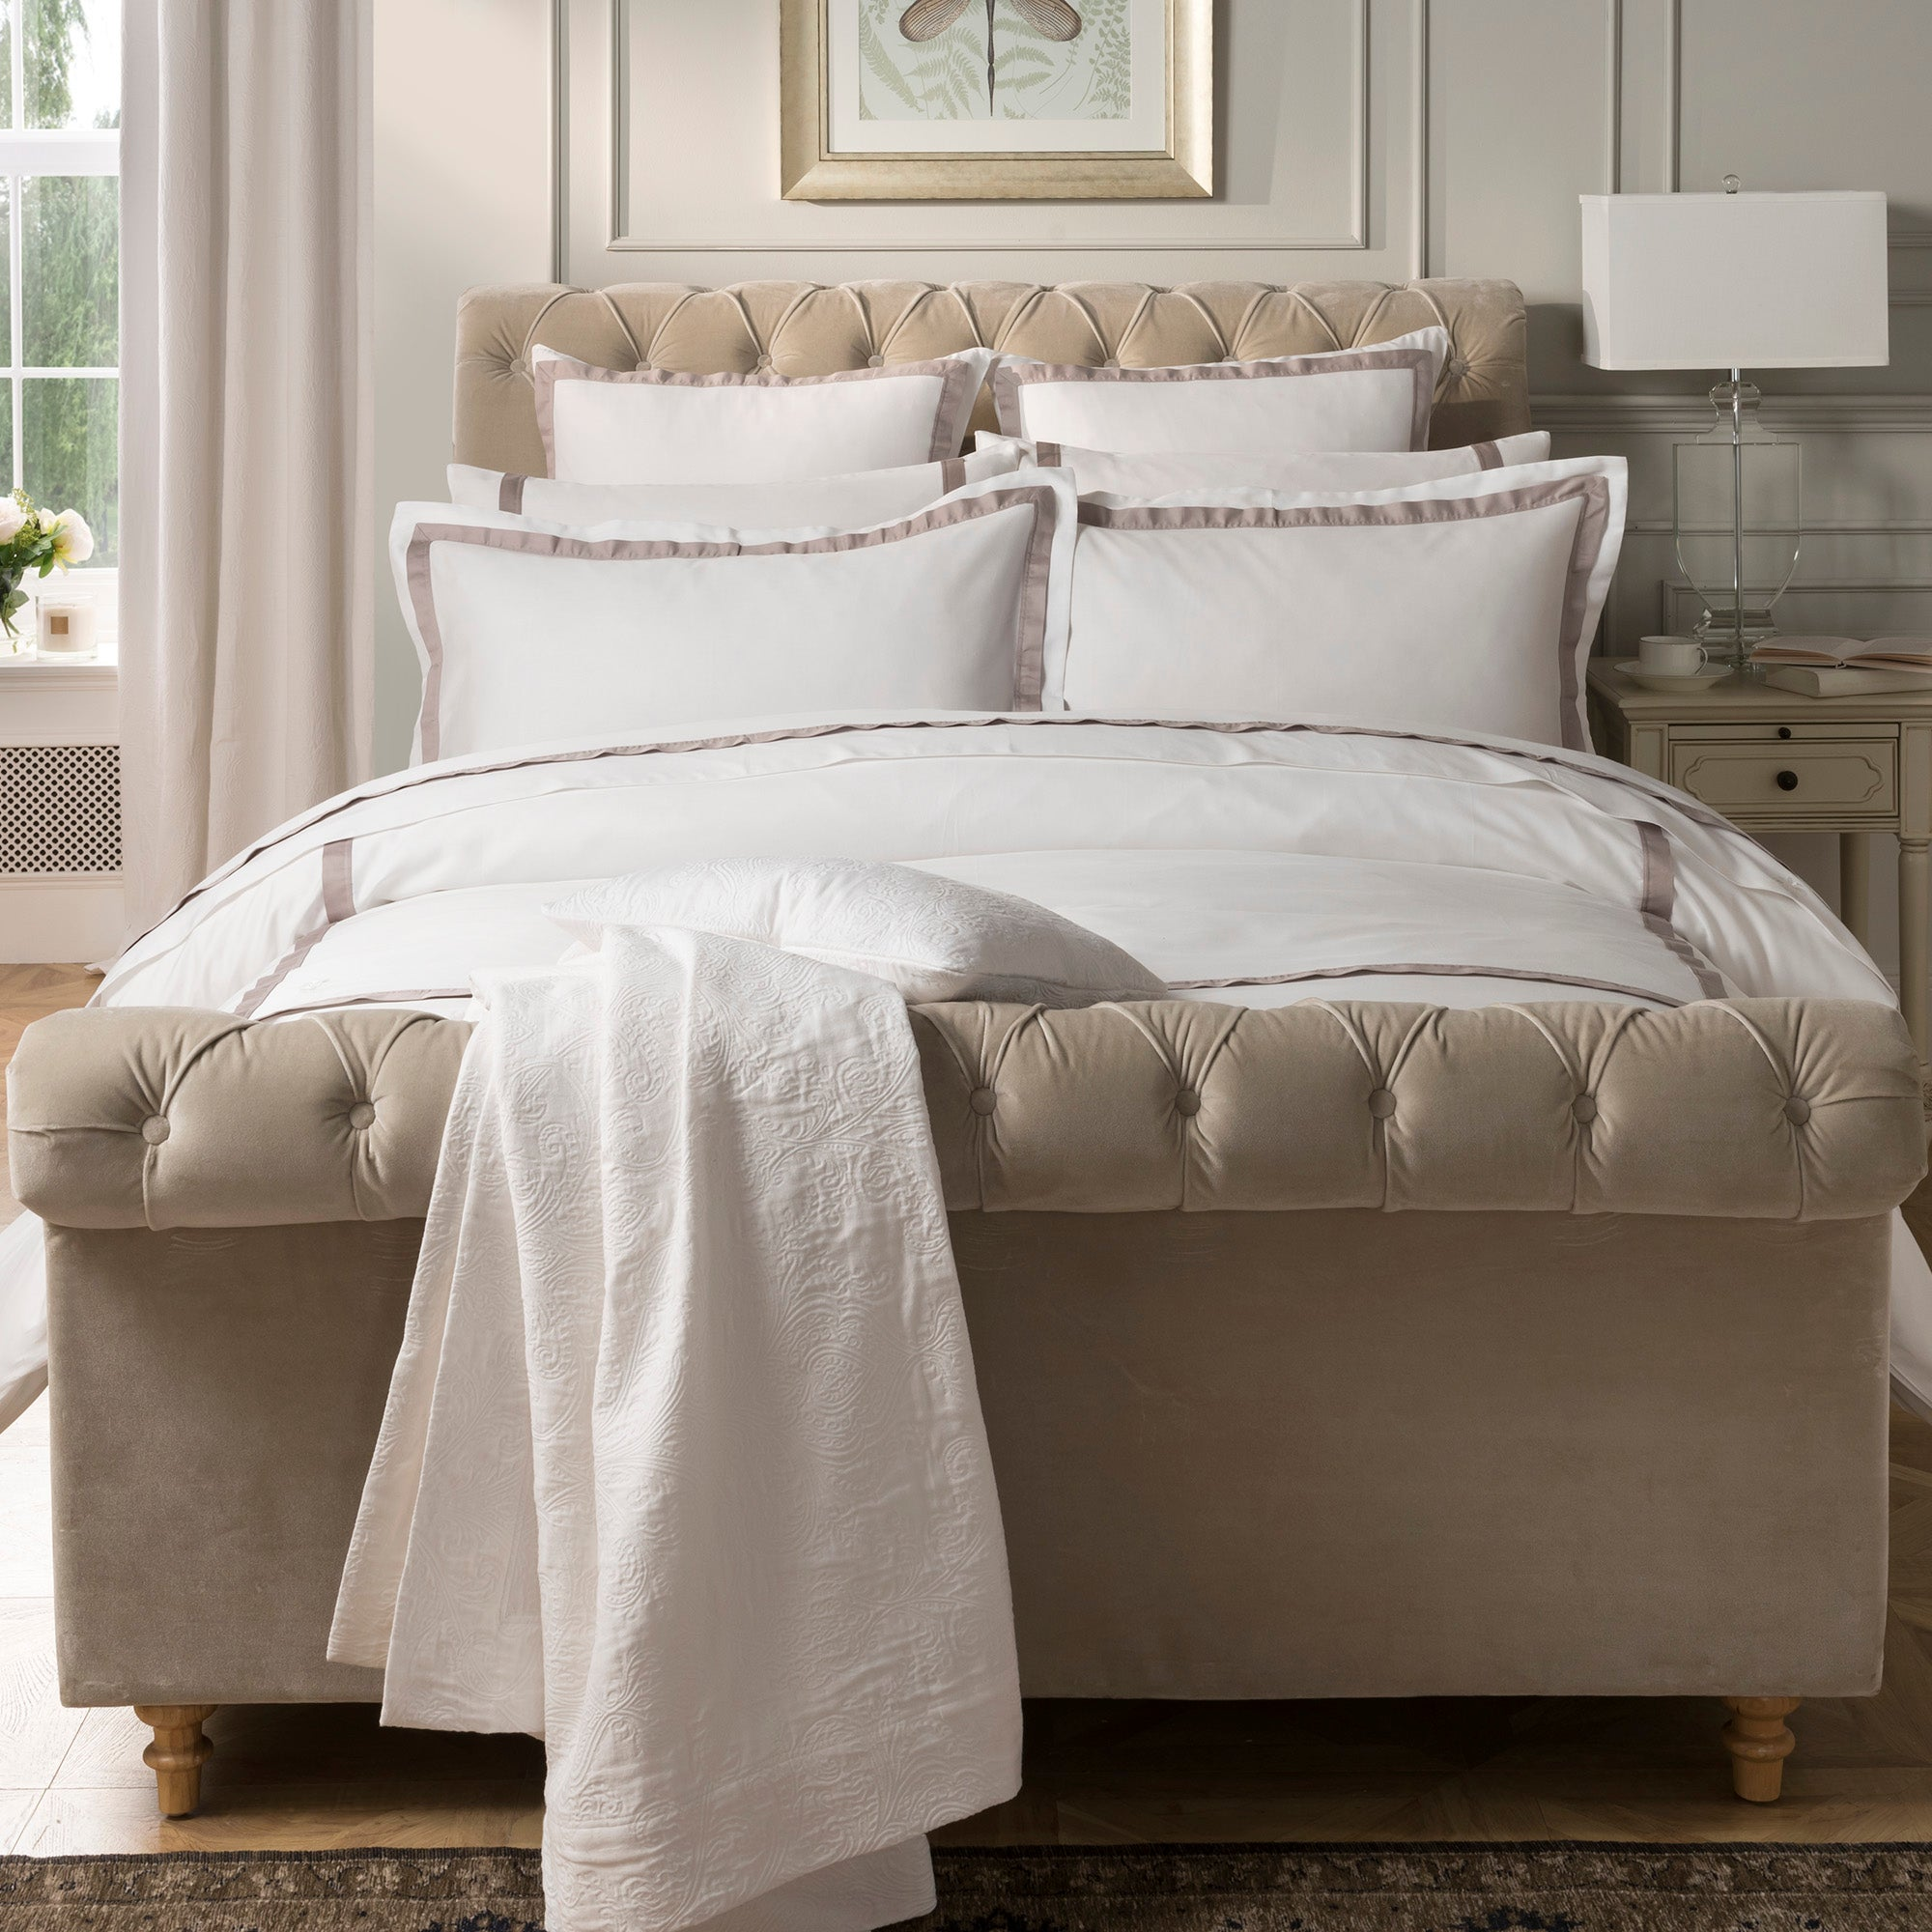 Dorma Maddison Natural Bed Linen Collection